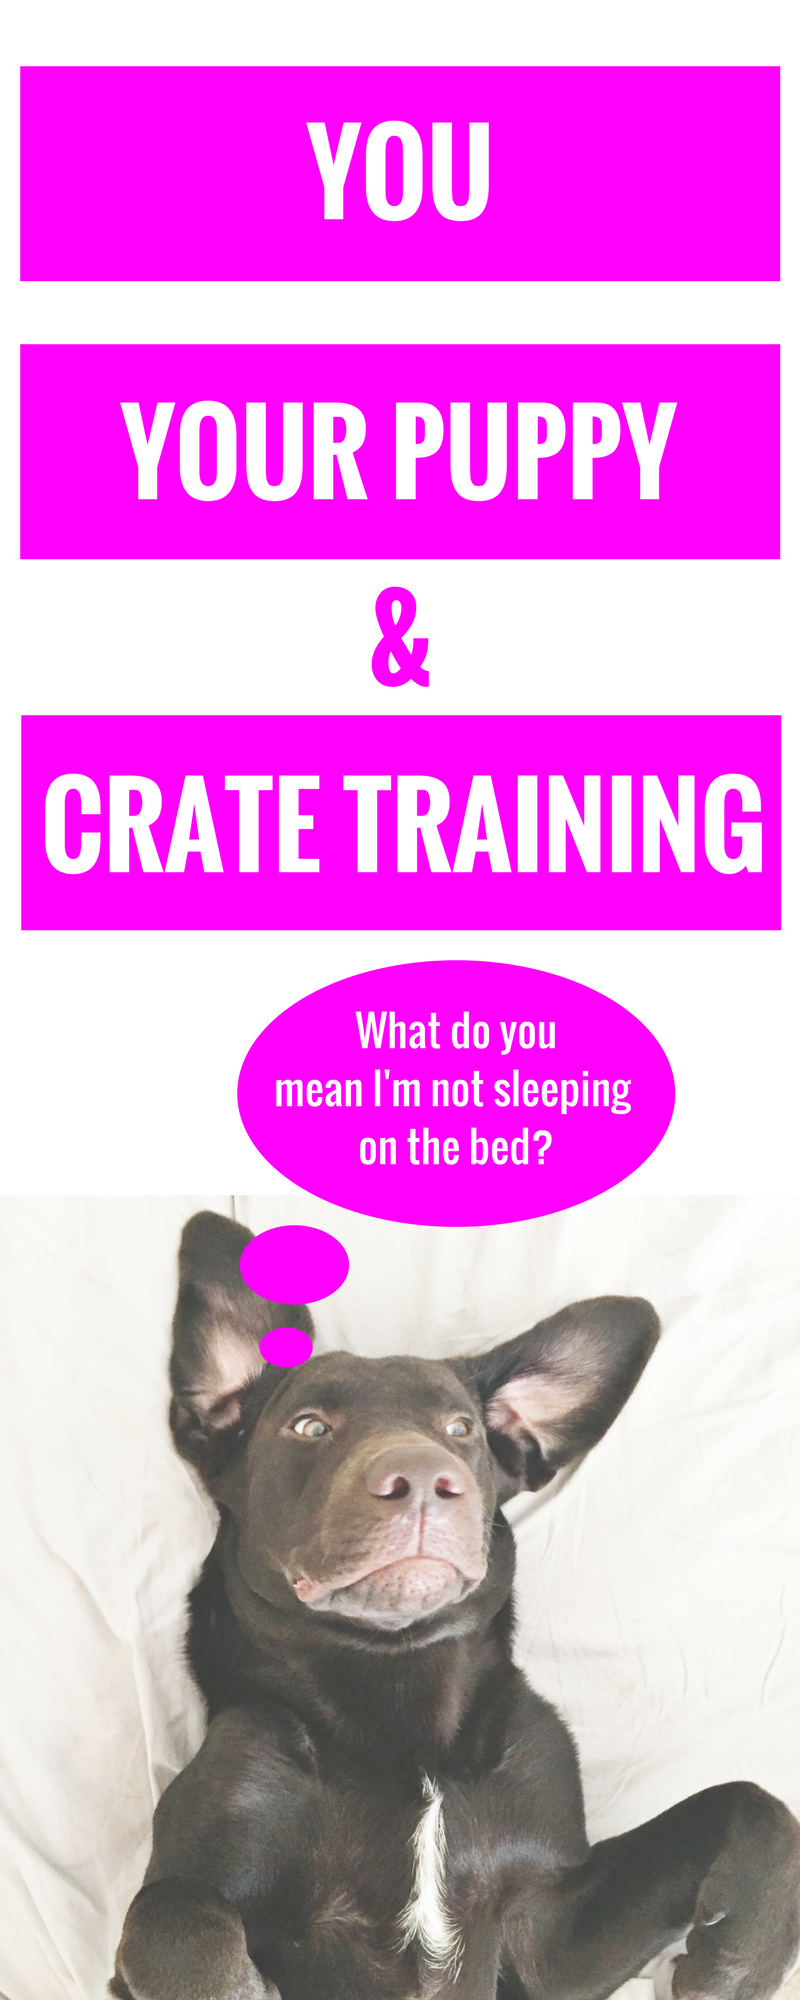 You, Your Puppy + Crate Training - Puppy Tips - Tips for pet owners - new puppy tips - crate training tips - crate training 101 - helpful tips for new pet owners - Communikait by Kait Hanson